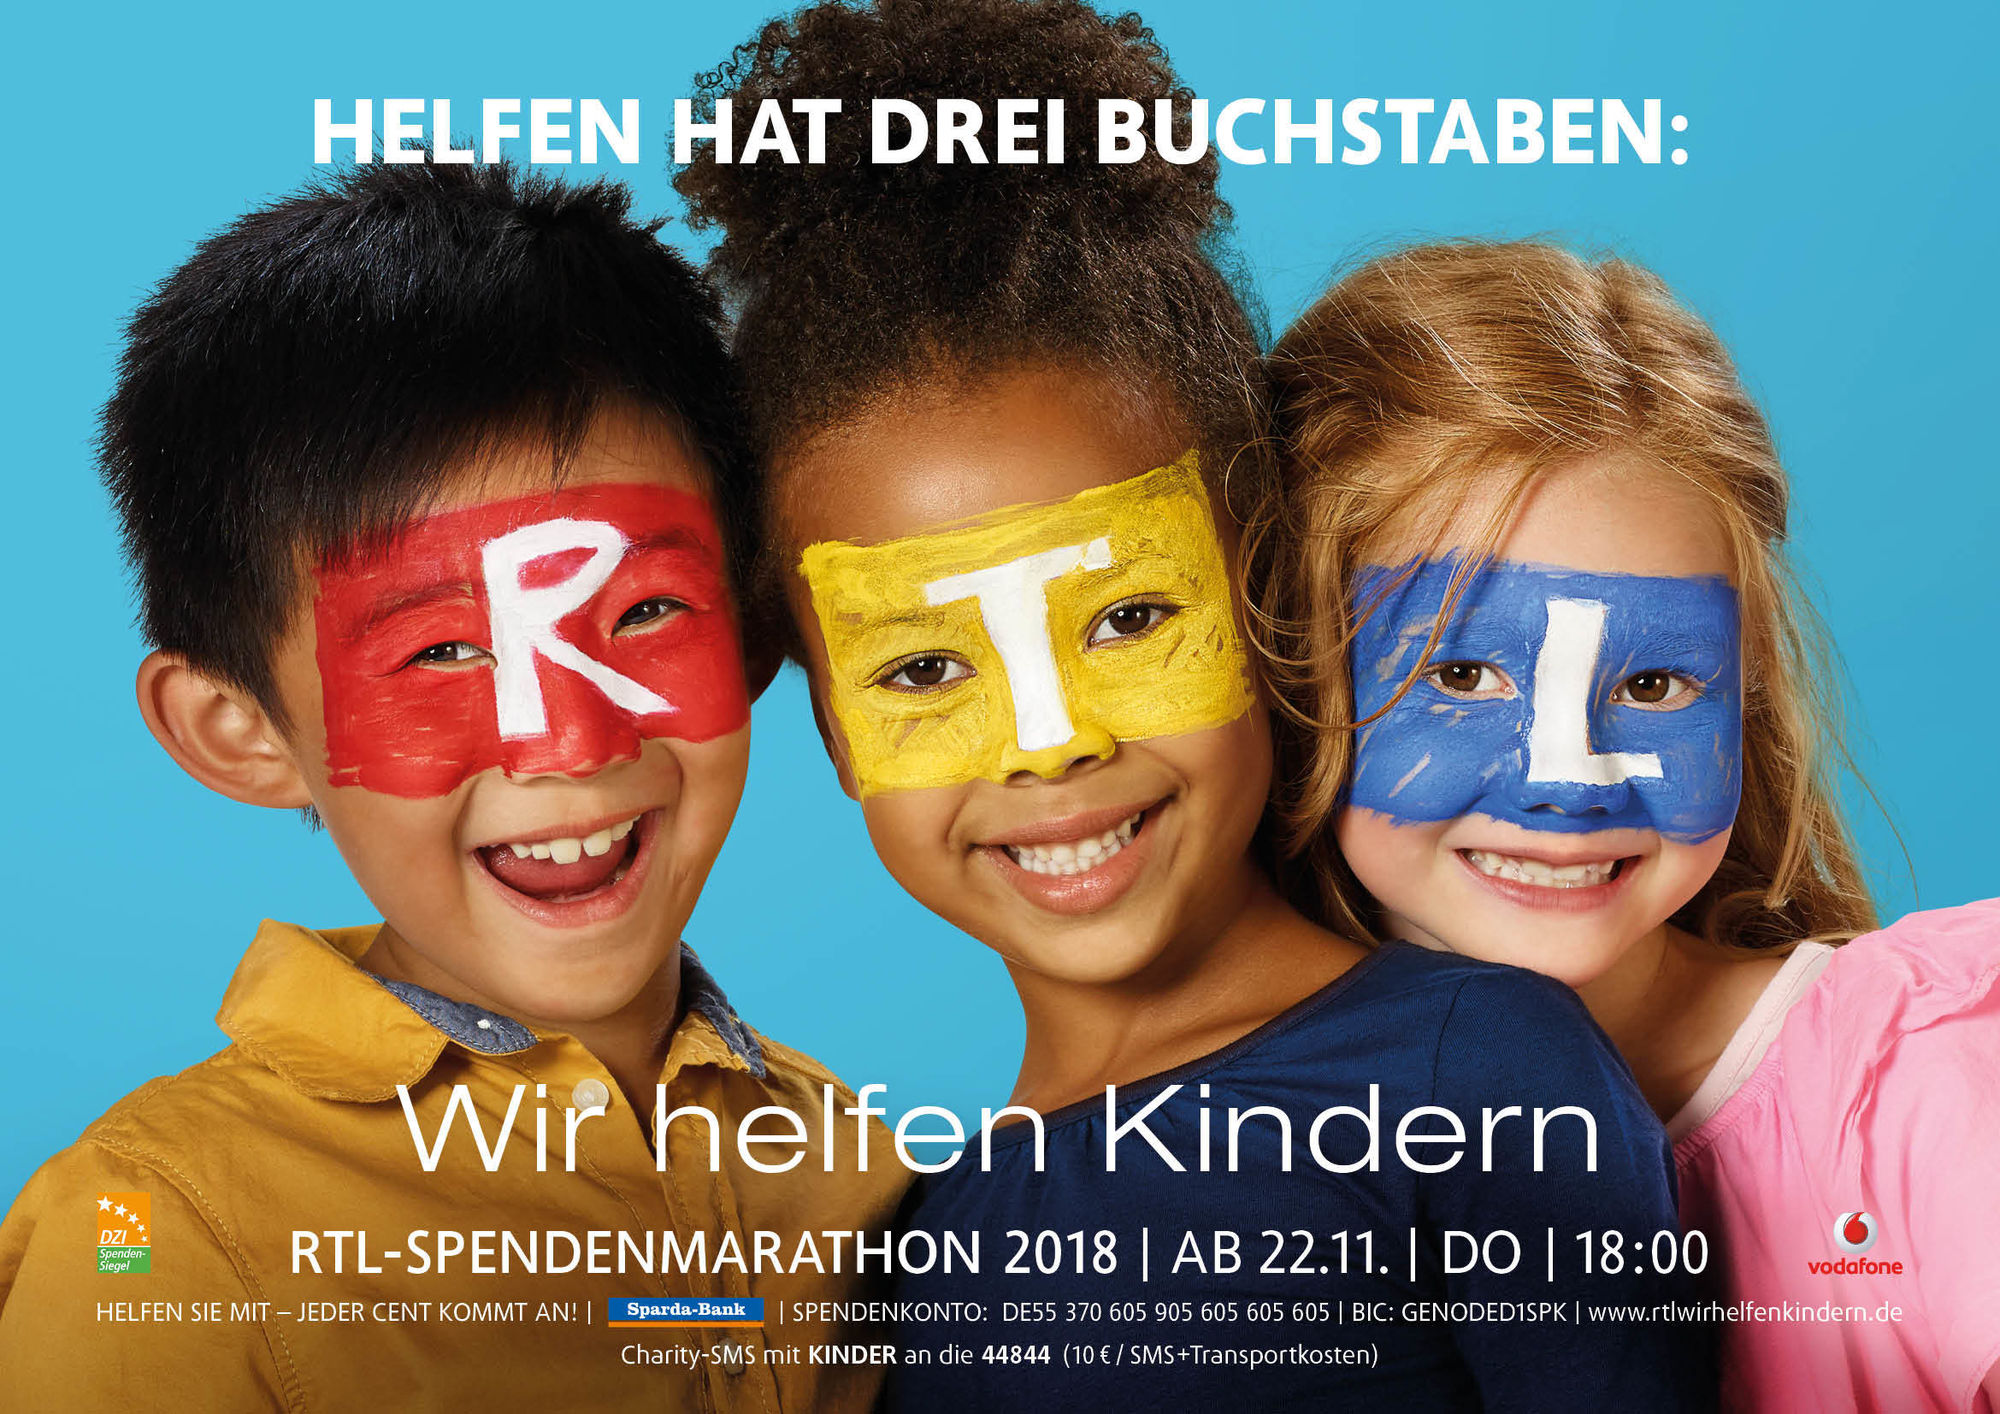 RUPRECHT STEMPELL FOR MEDIENGRUPPE RTL -  SPENDENMARATHON 2018